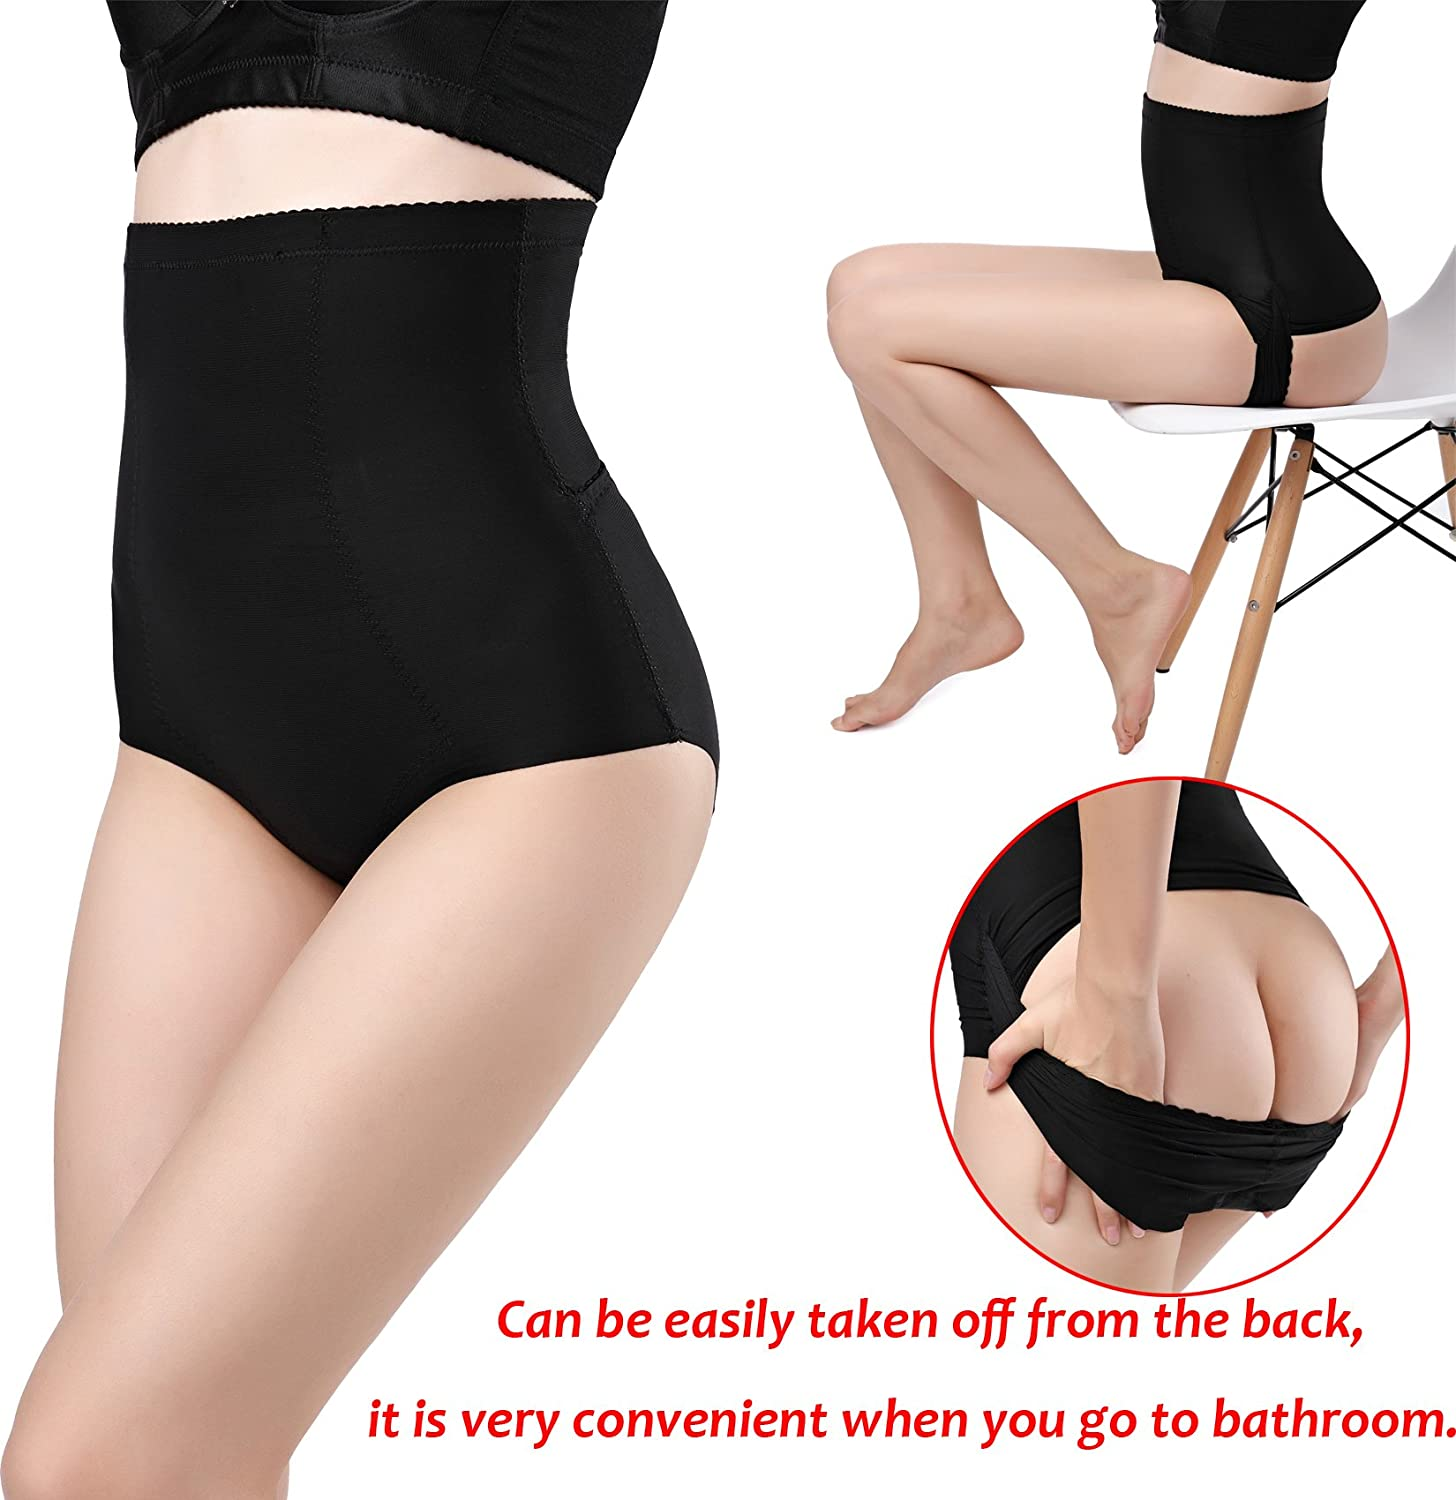 46462e4995 Amazon.com  DODOING Slimming Panty Postpartum Underwear Seamless Body Belly Shaper  Invisible Butt Lifter Tummy Control Panties High Waist Trainer Shapewear ...